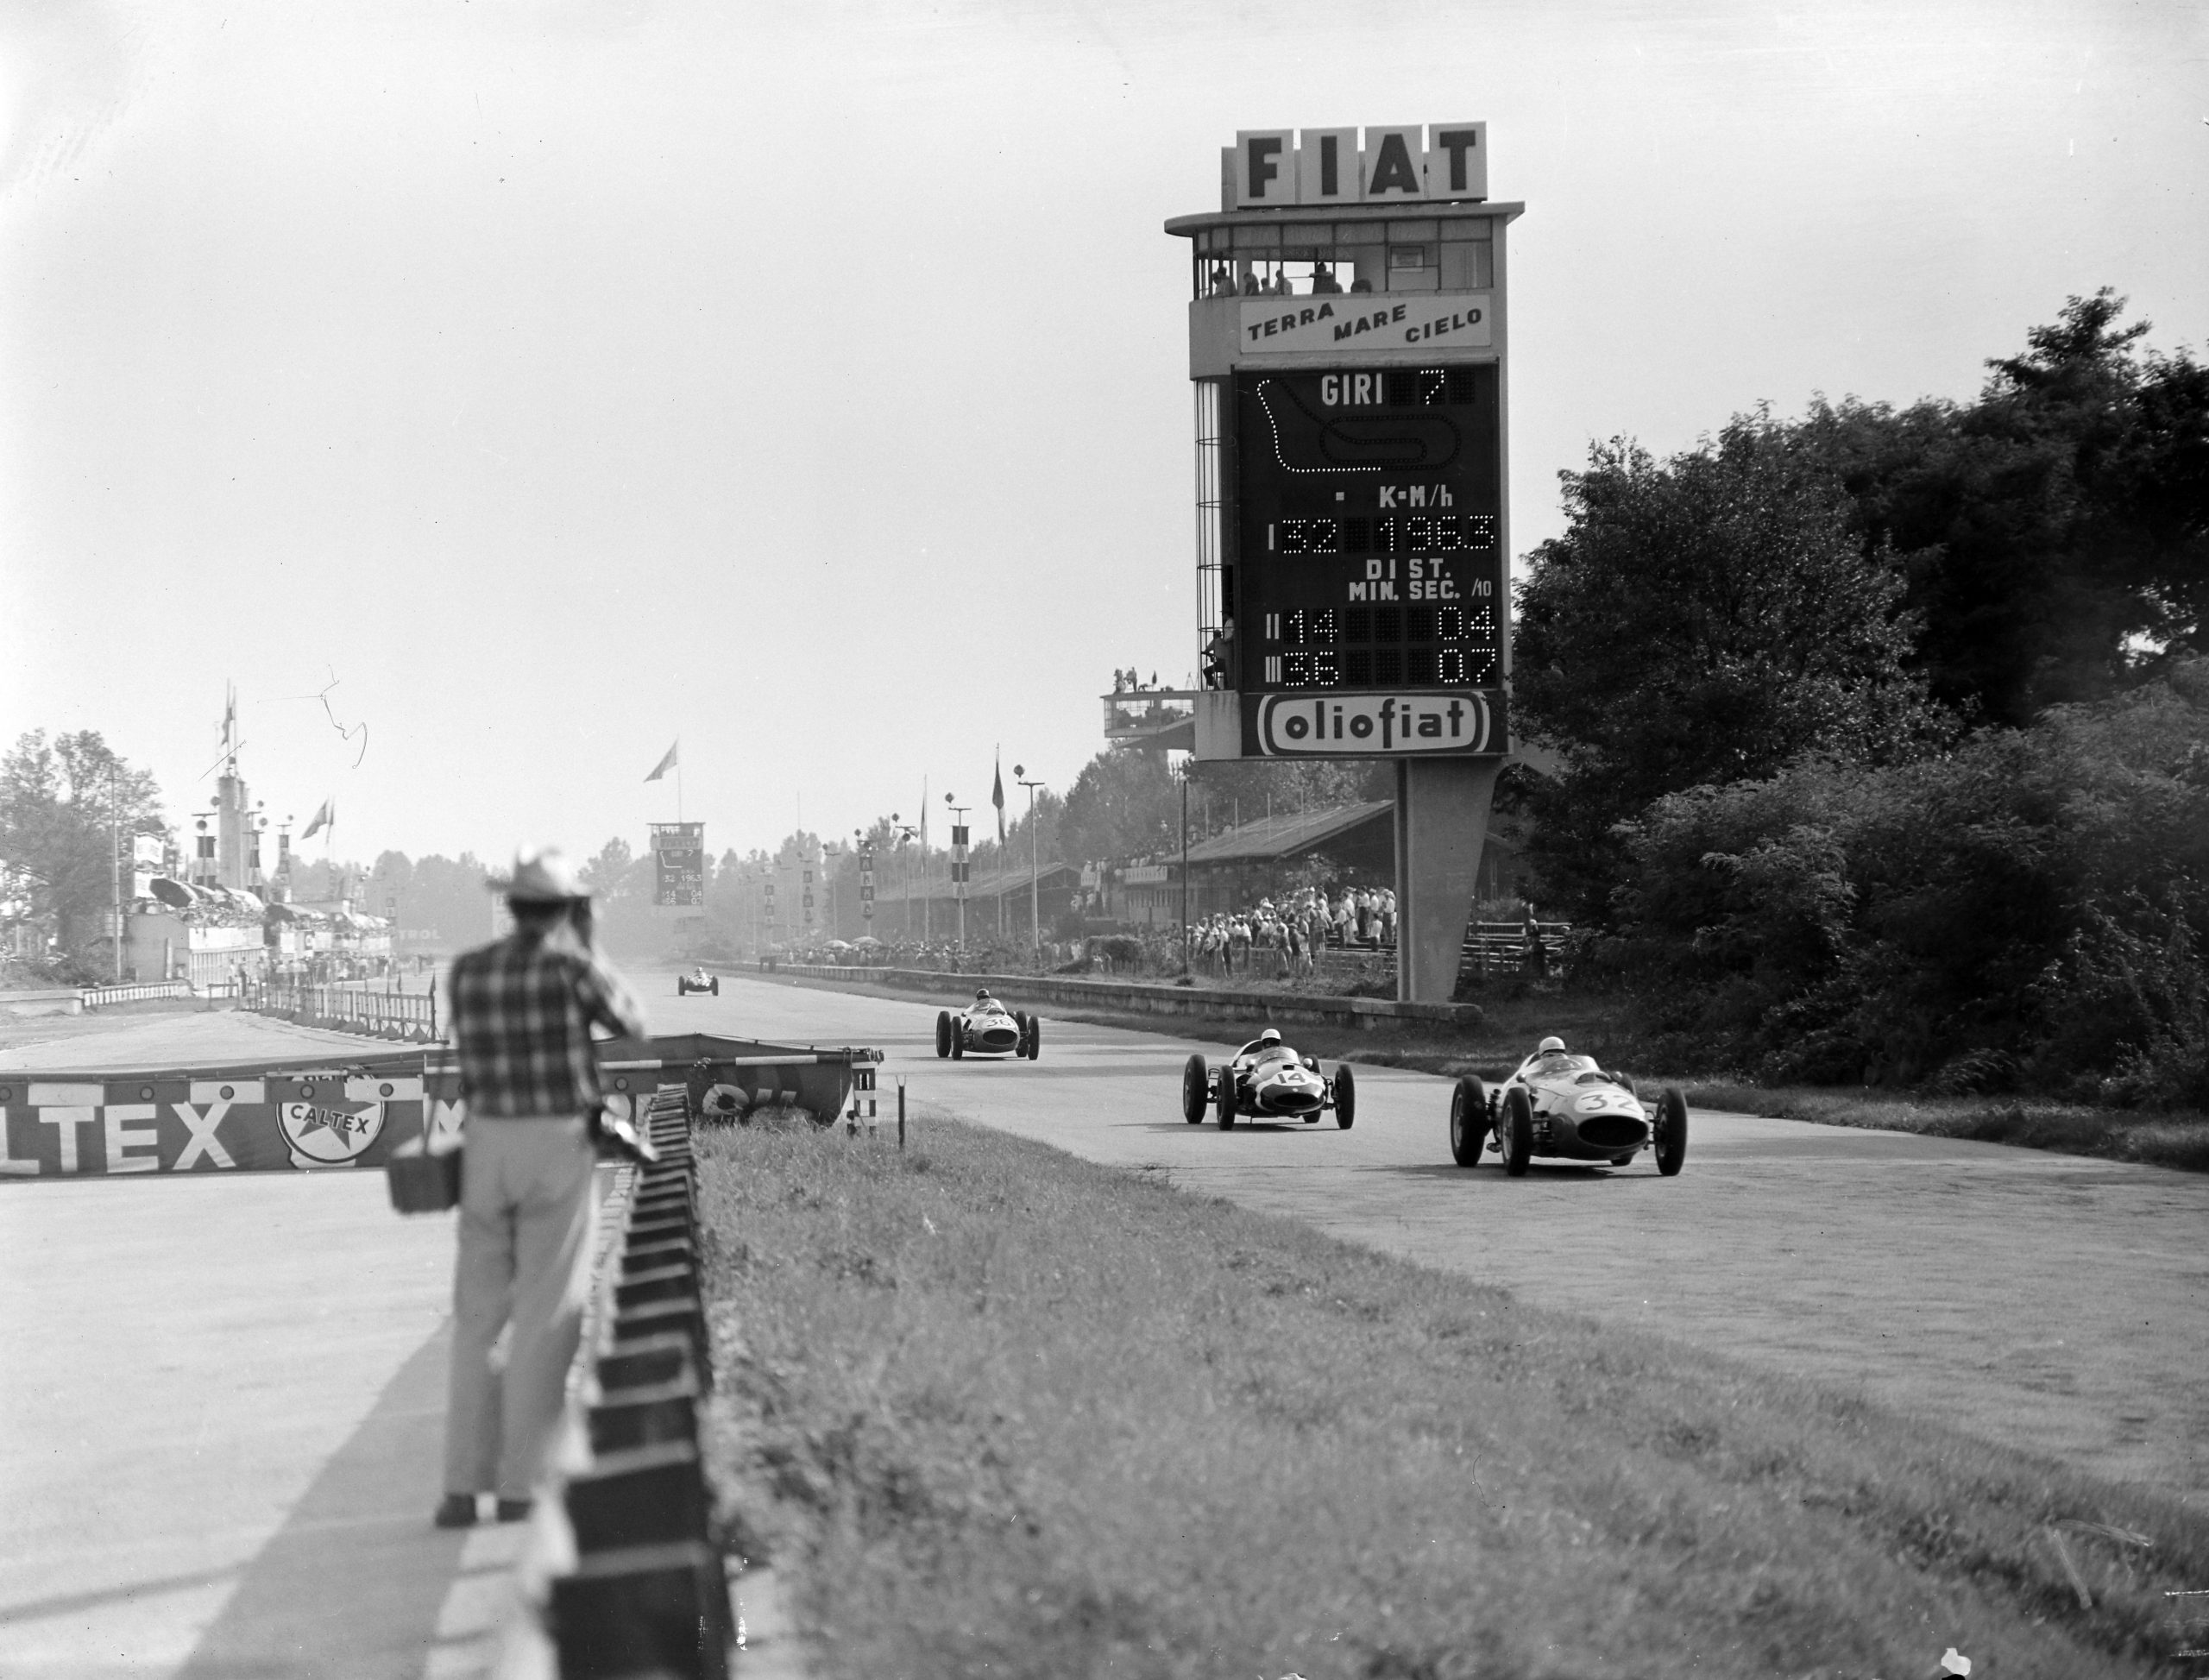 Phil Hill, in a Ferrari 246, leads Stirling Moss driving a Cooper T51 Climax and Dan Gurney also in a Ferrari 246